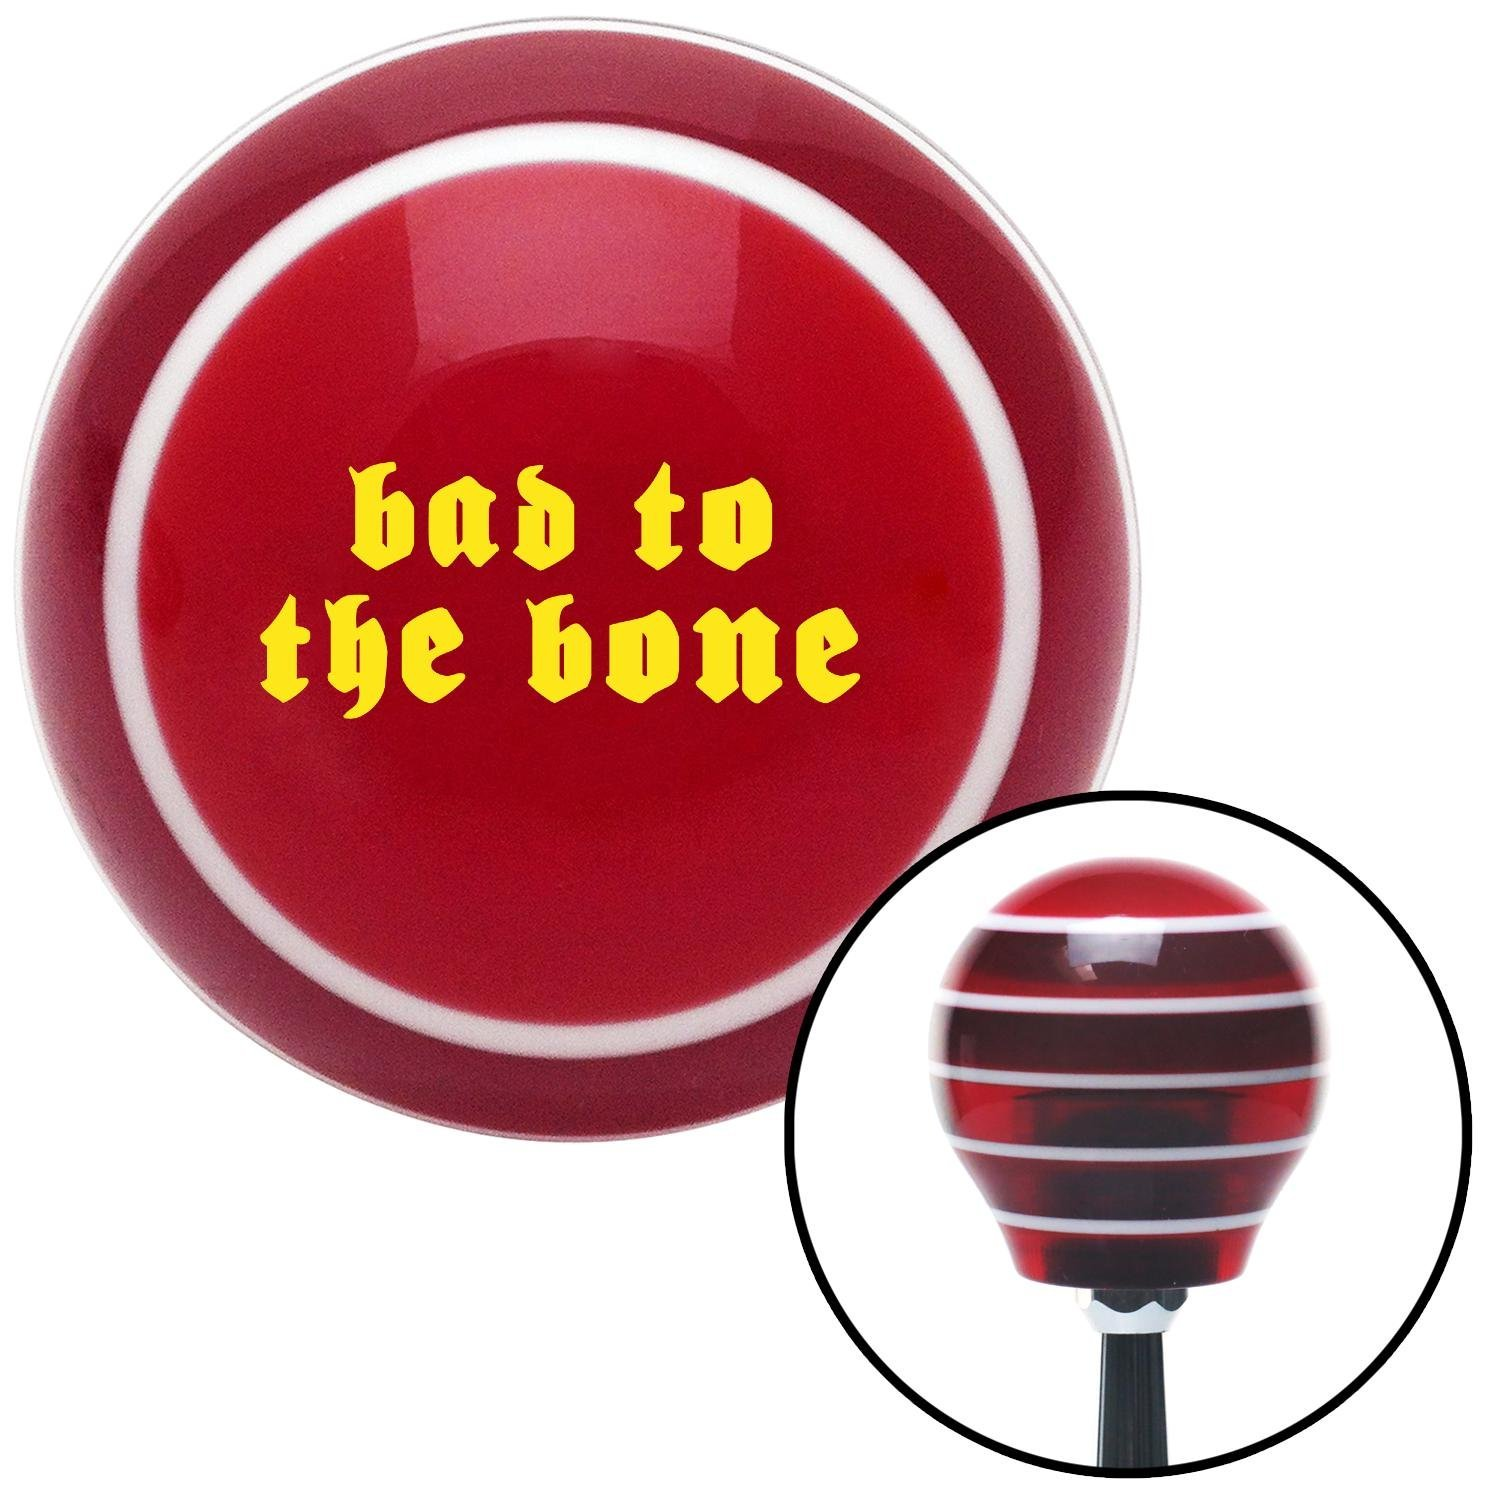 American Shifter 119649 Red Stripe Shift Knob with M16 x 1.5 Insert Yellow Bad to The Bone